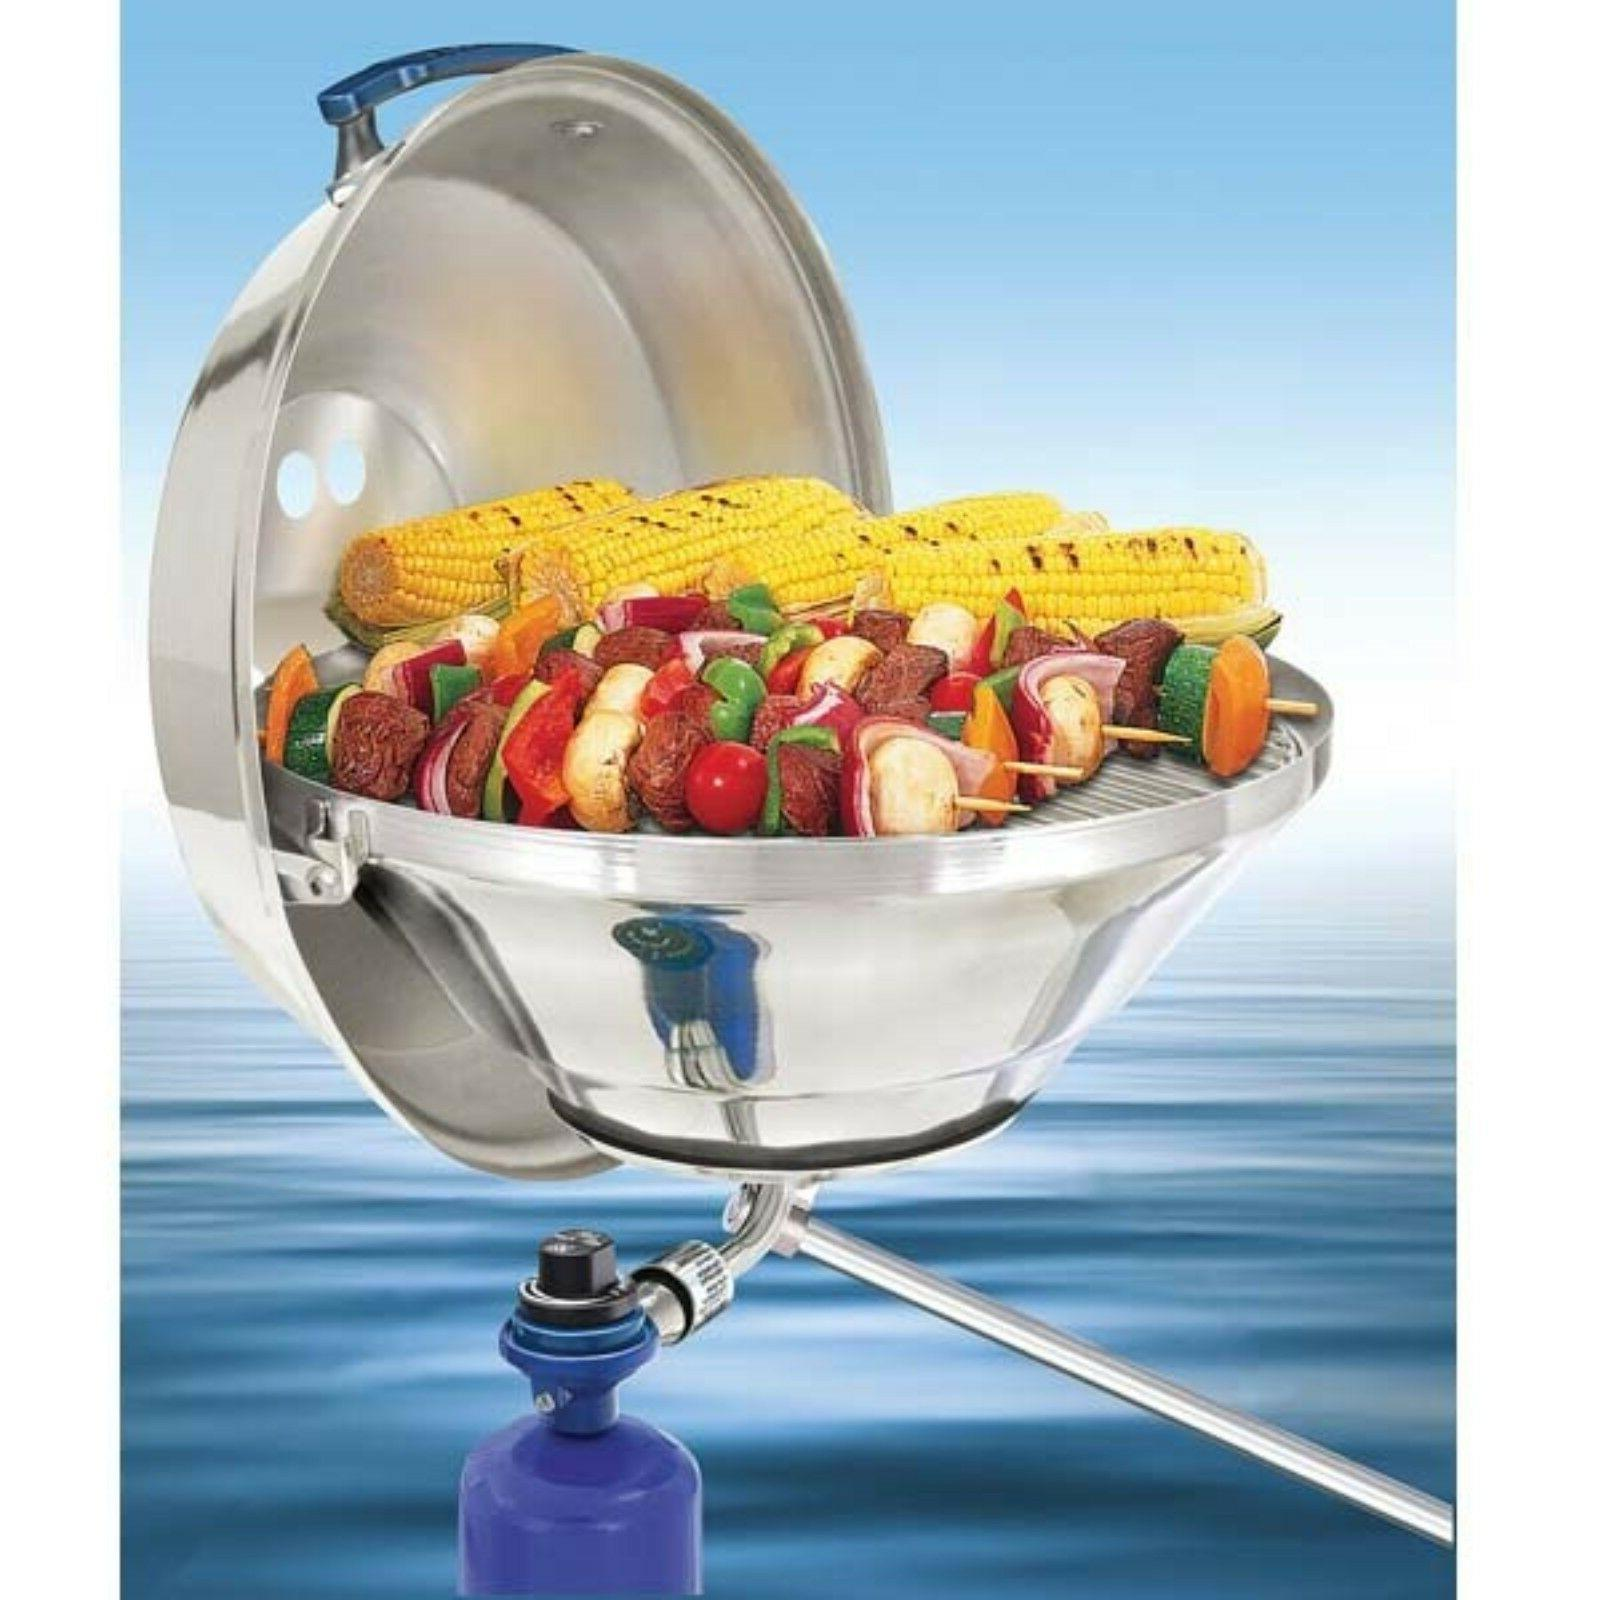 Magma Grills A10-215 Kettle Gas Grill Party Size 17""